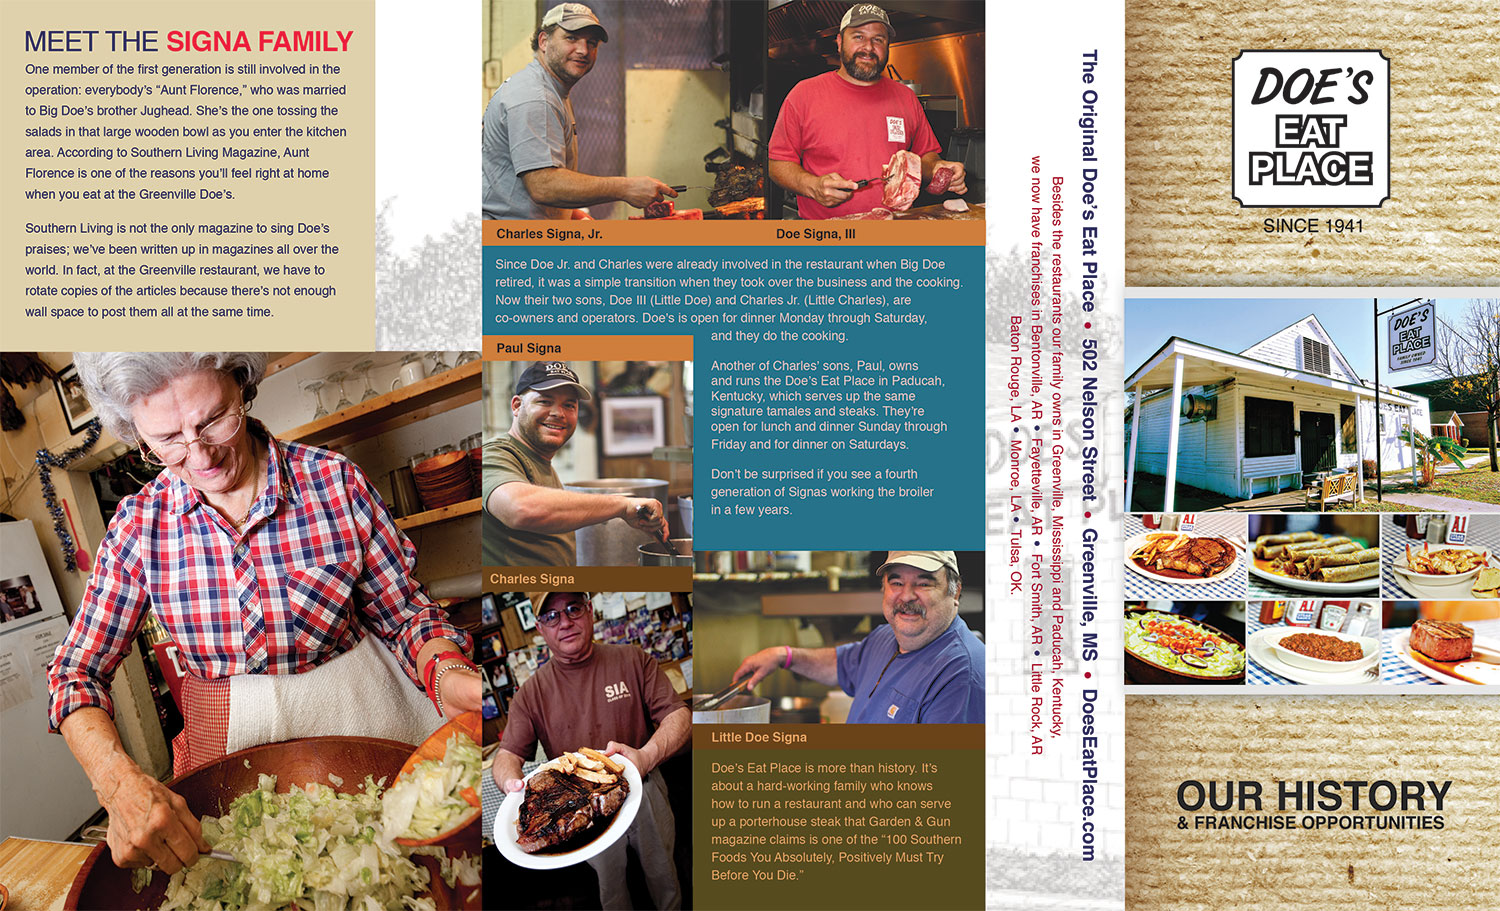 That Creative Guy. Doe's Eat Place Brochure Design. brand expert. graphic design. web design in mississippi.